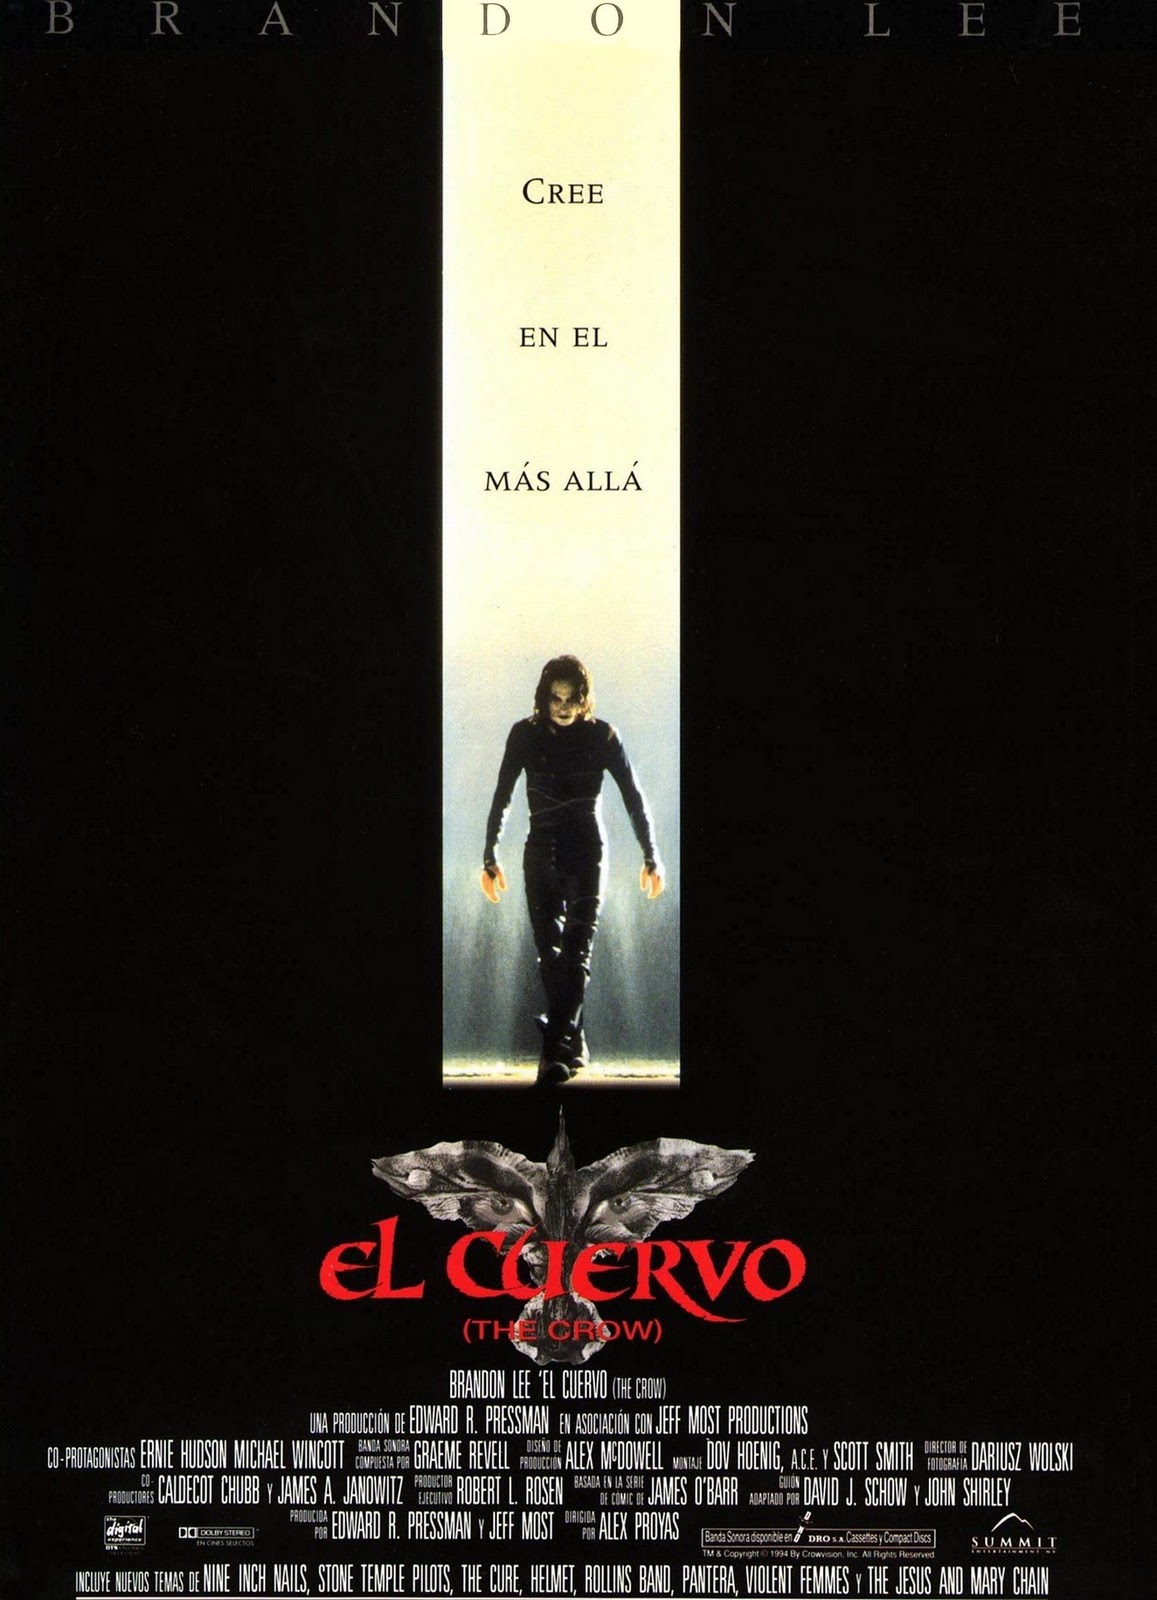 El Cuervo (The Crow) (1994)